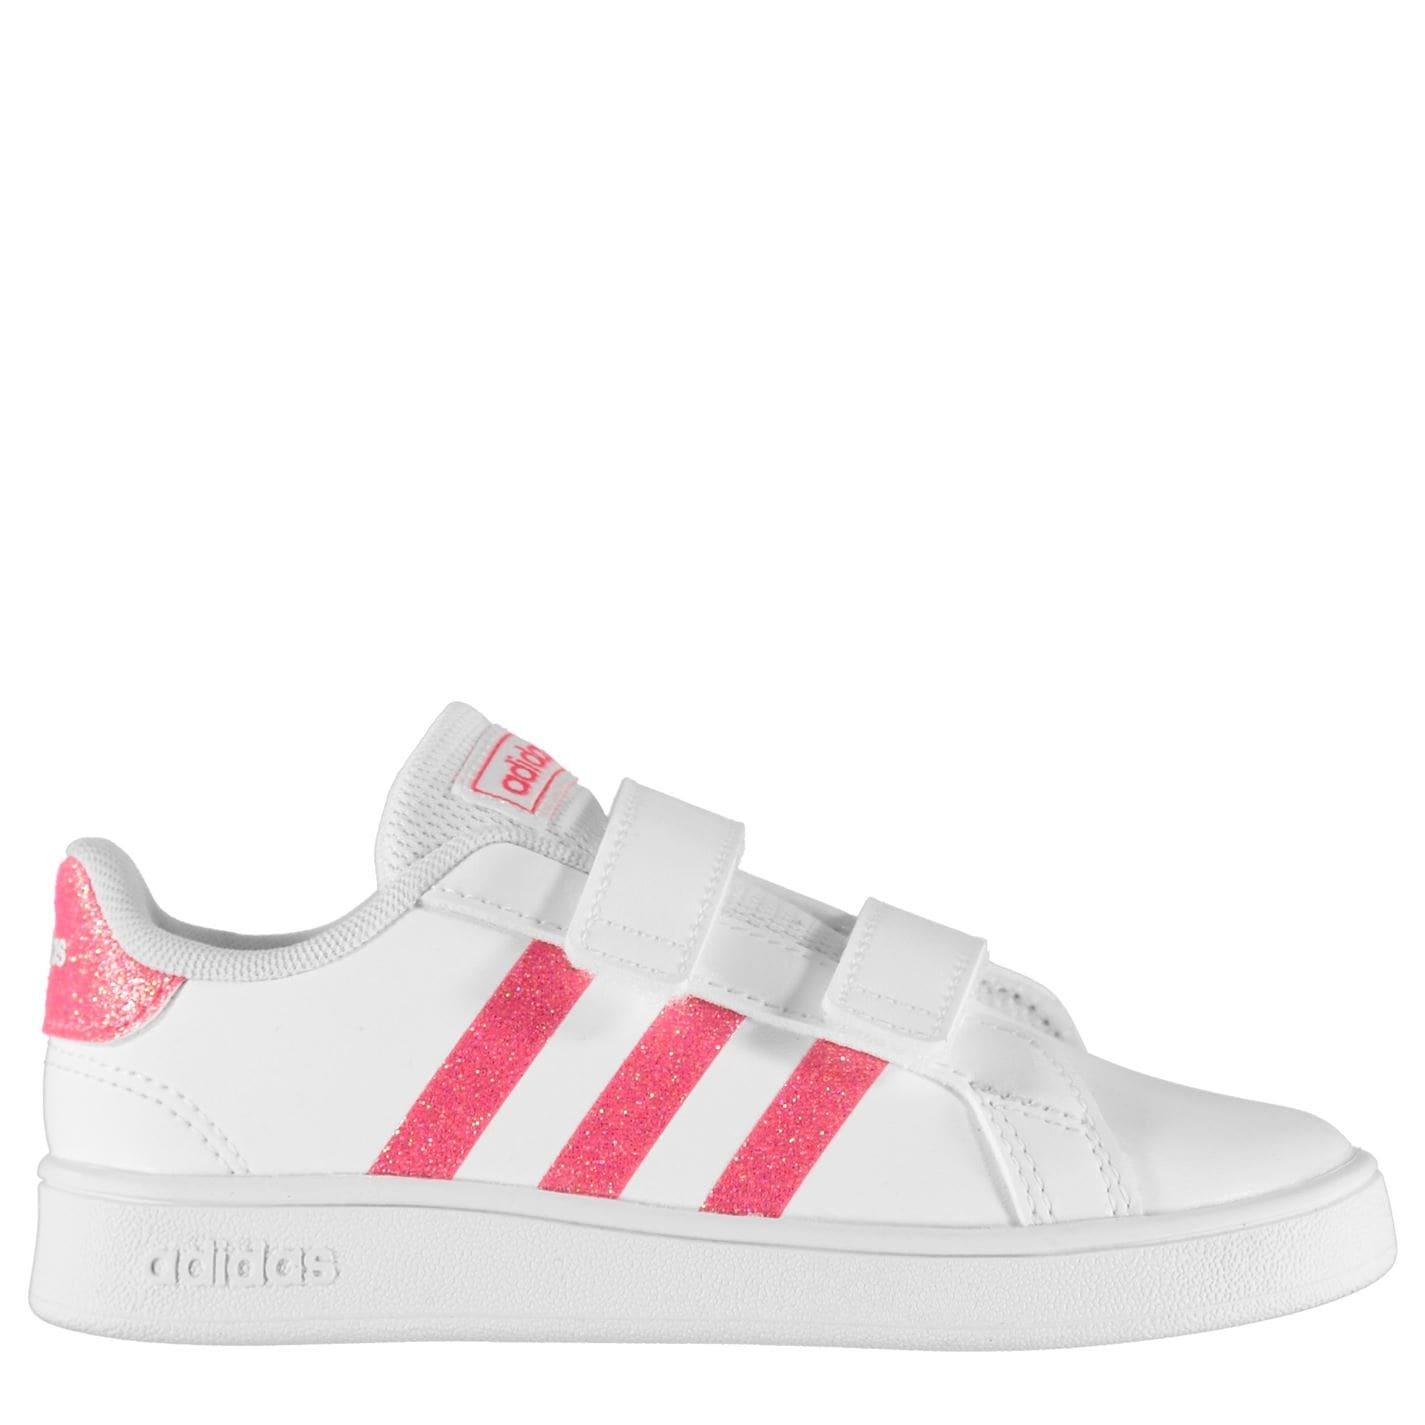 adidas adidas Grand Court Trainers Infant Girls Wht/Glitterpink